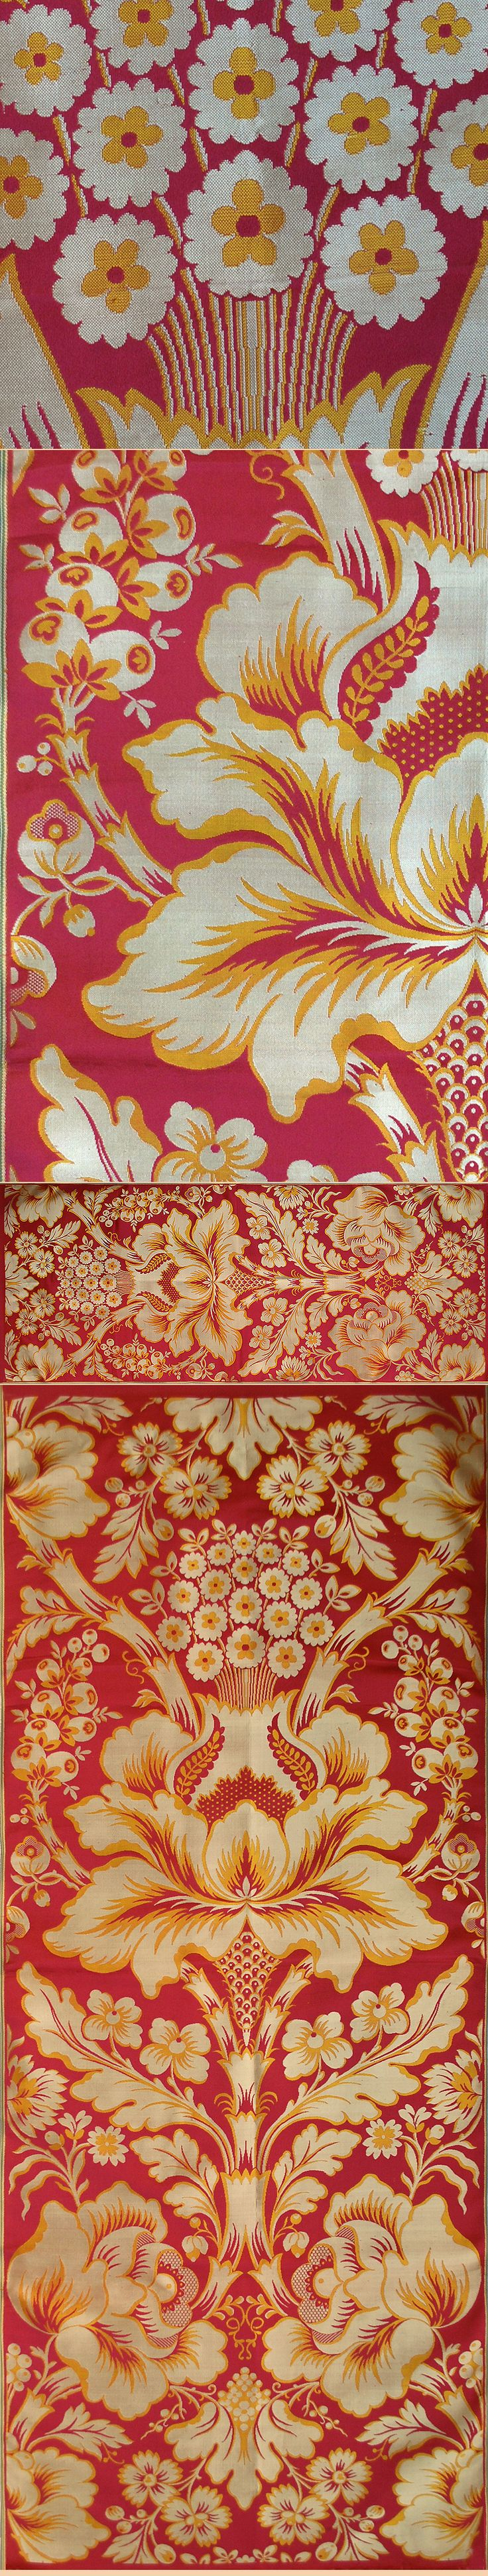 French Textiles - TextileAsArt.com, Fine Antique Textiles and Antique Textile Information